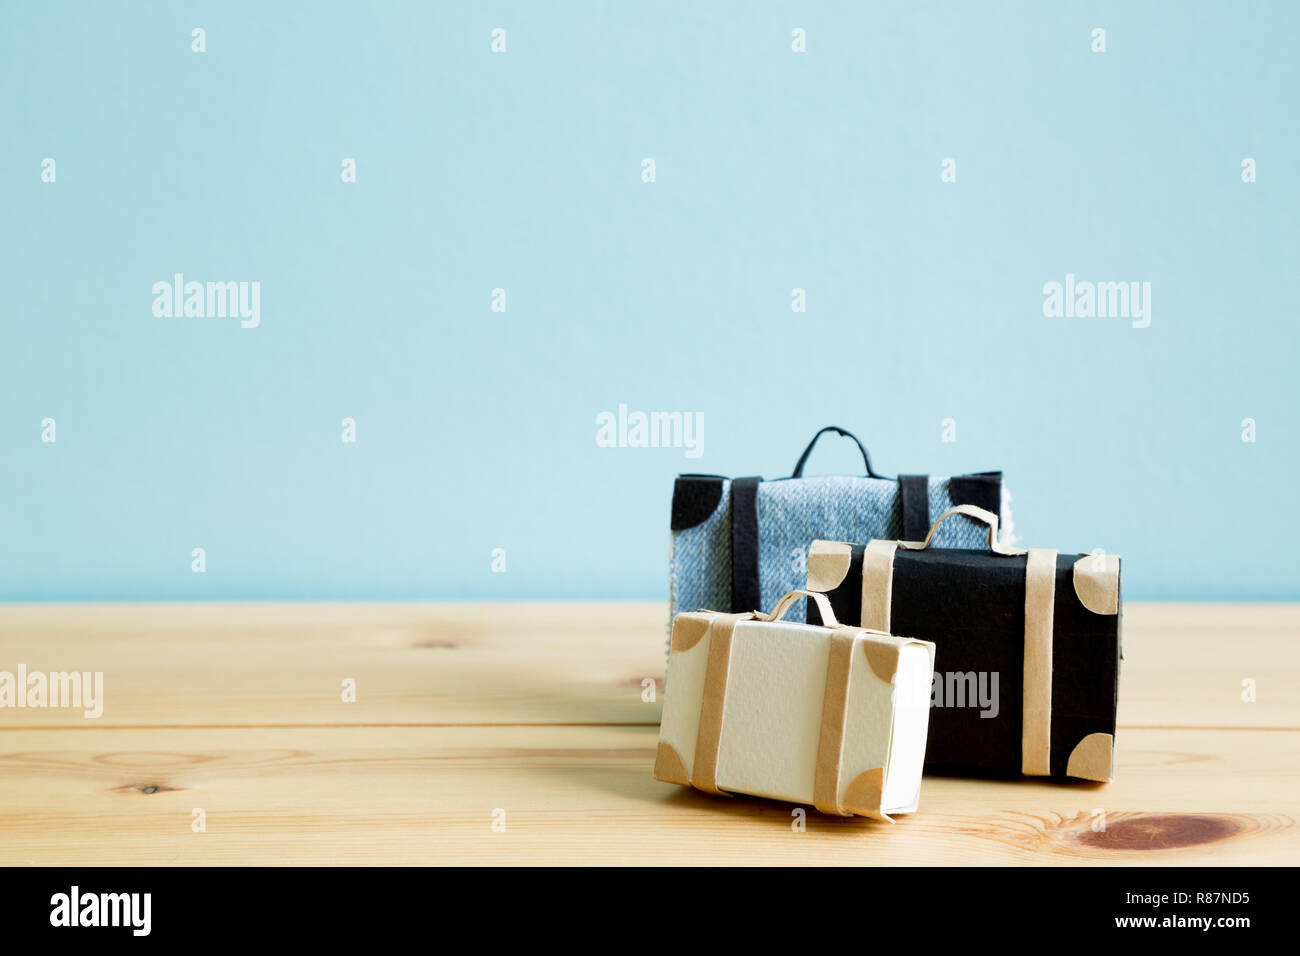 Travel suitcase on wooden table with sky blue background - Stock Image